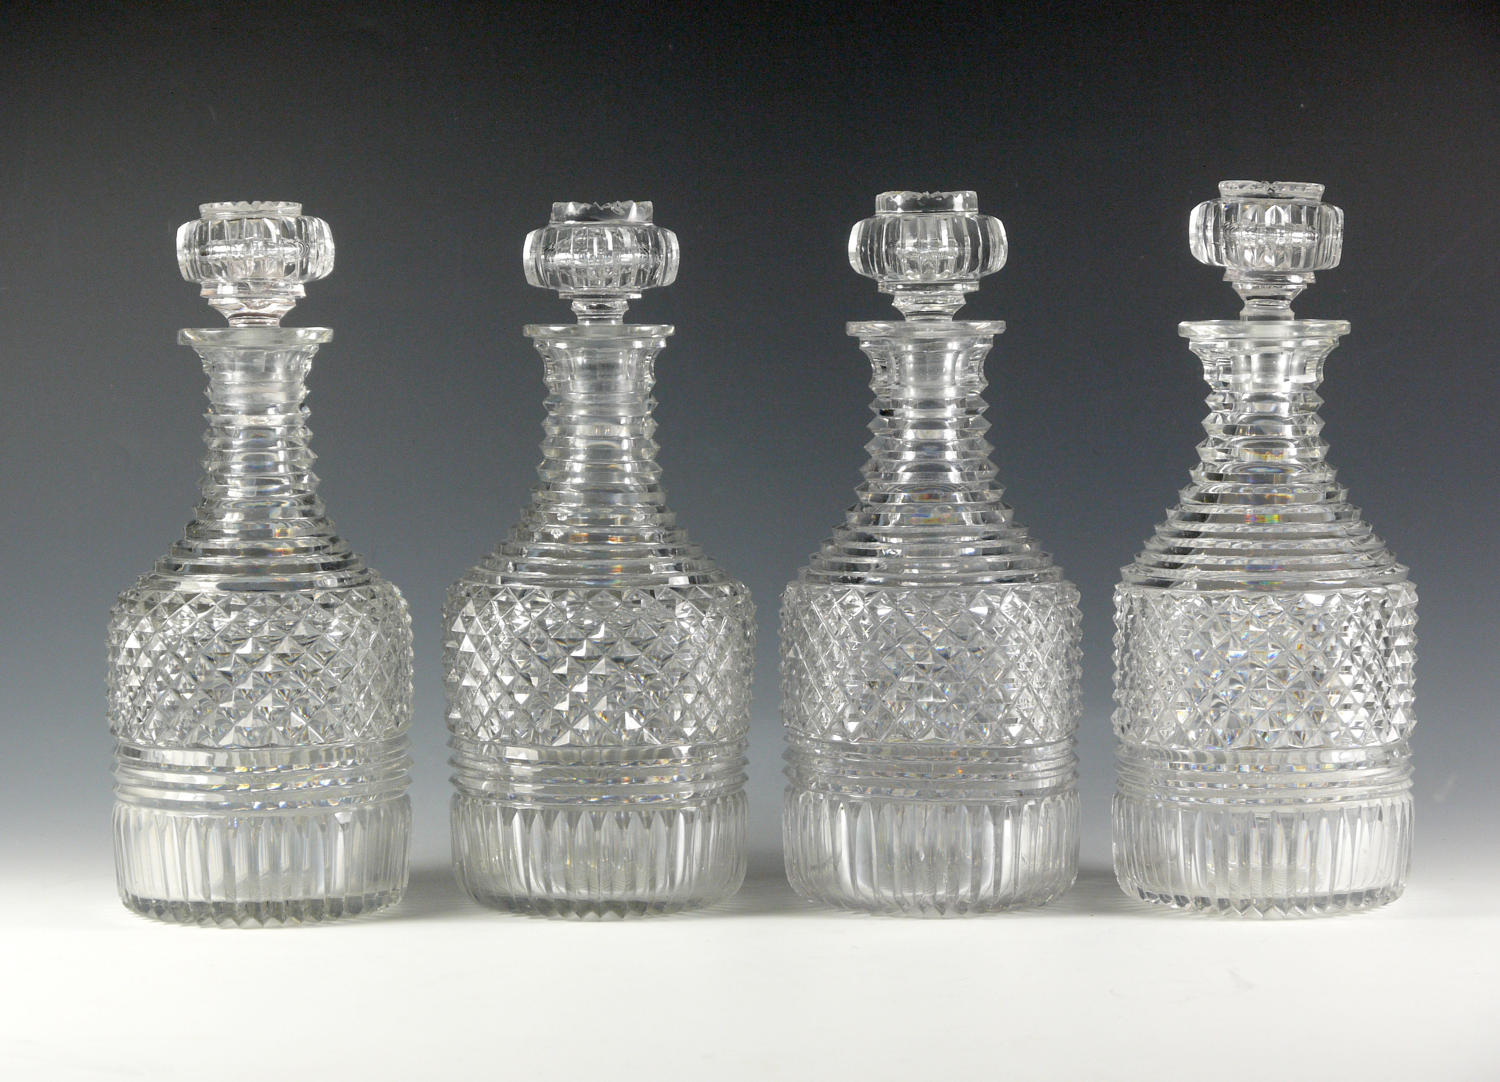 An exceptional set of 4 decanters with a pair of double trolleys